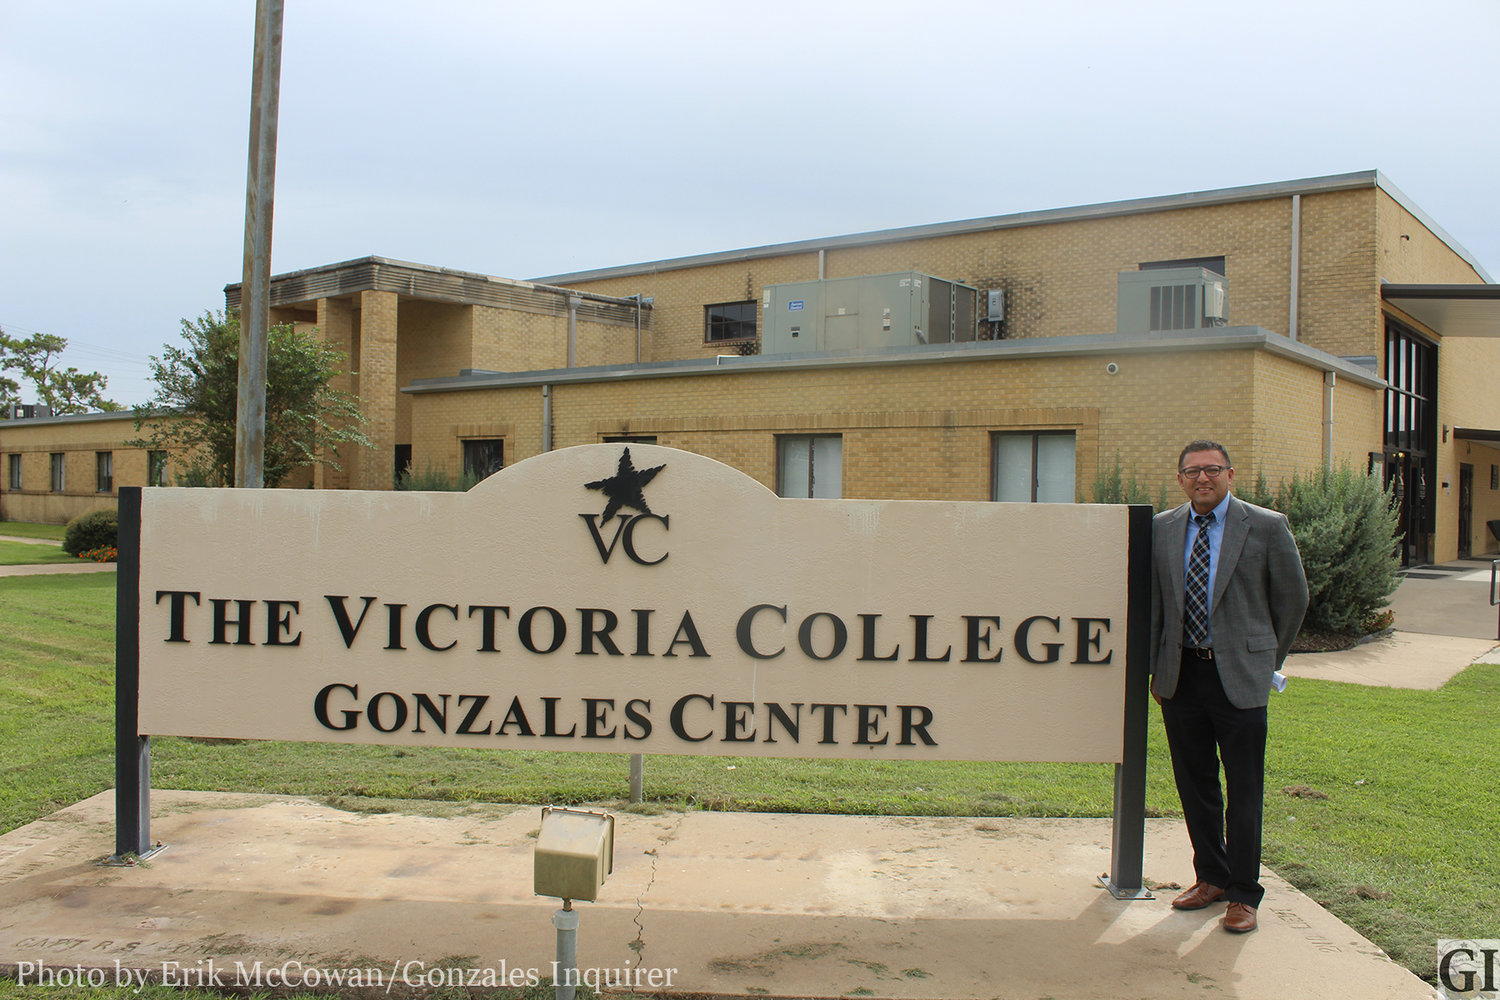 Since 2007, Victoria College's presence in Gonzales has helped many citizens and area businesses. Manager Vince Ortiz stands proudly in front of the Gonzales Center marker on Monday afternoon.